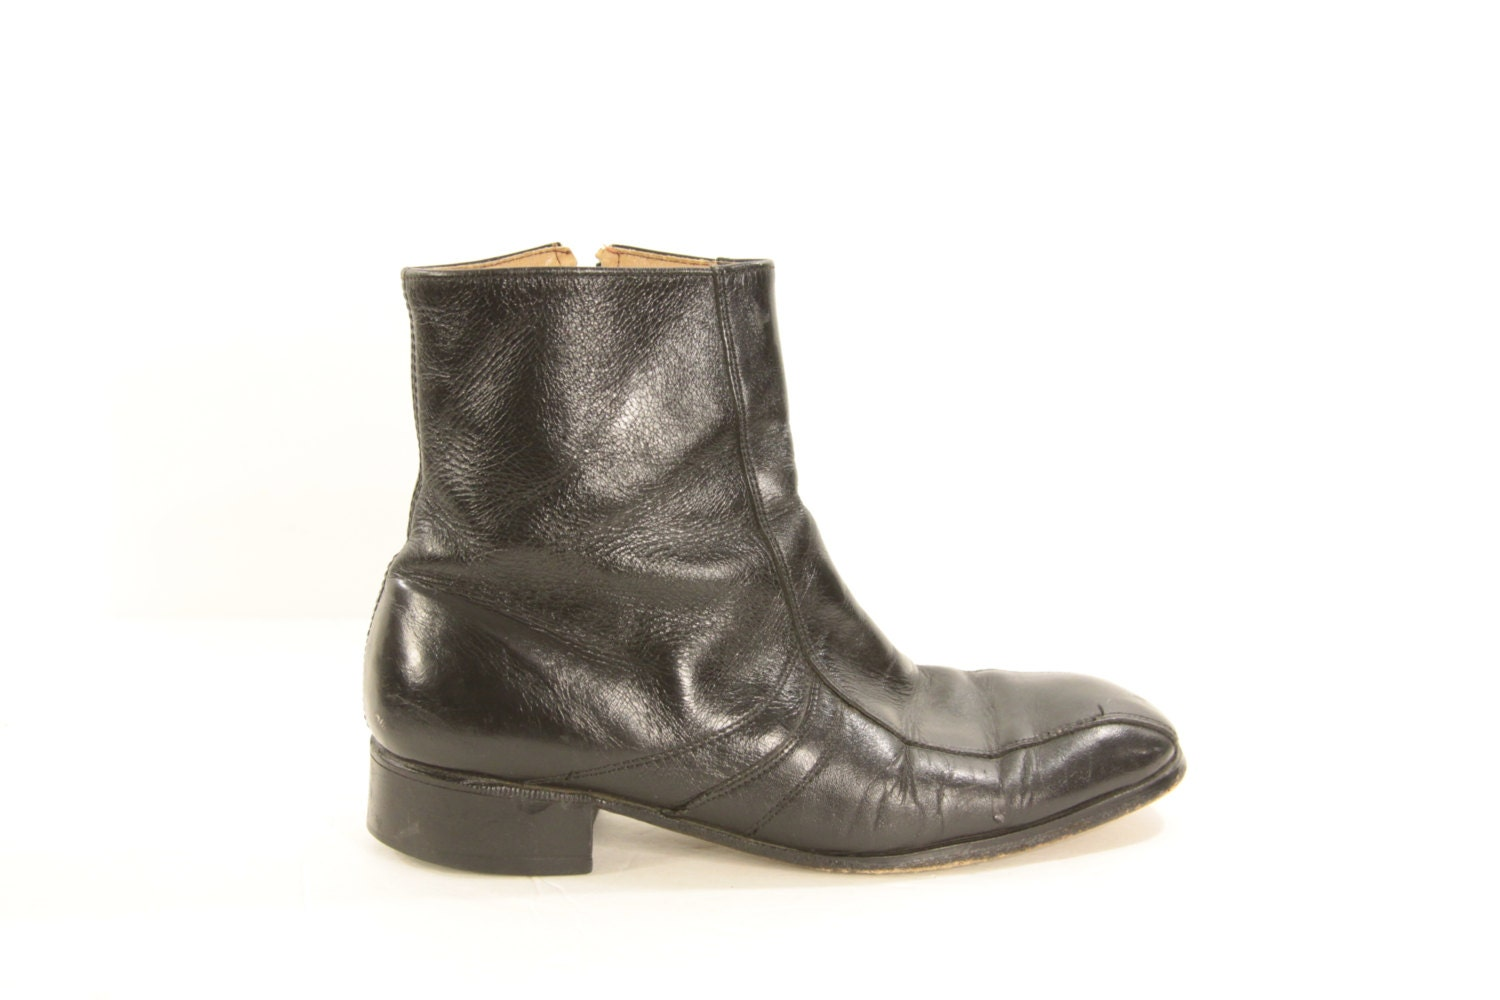 vintage mens black leather zip up ankle boots by fygapparel